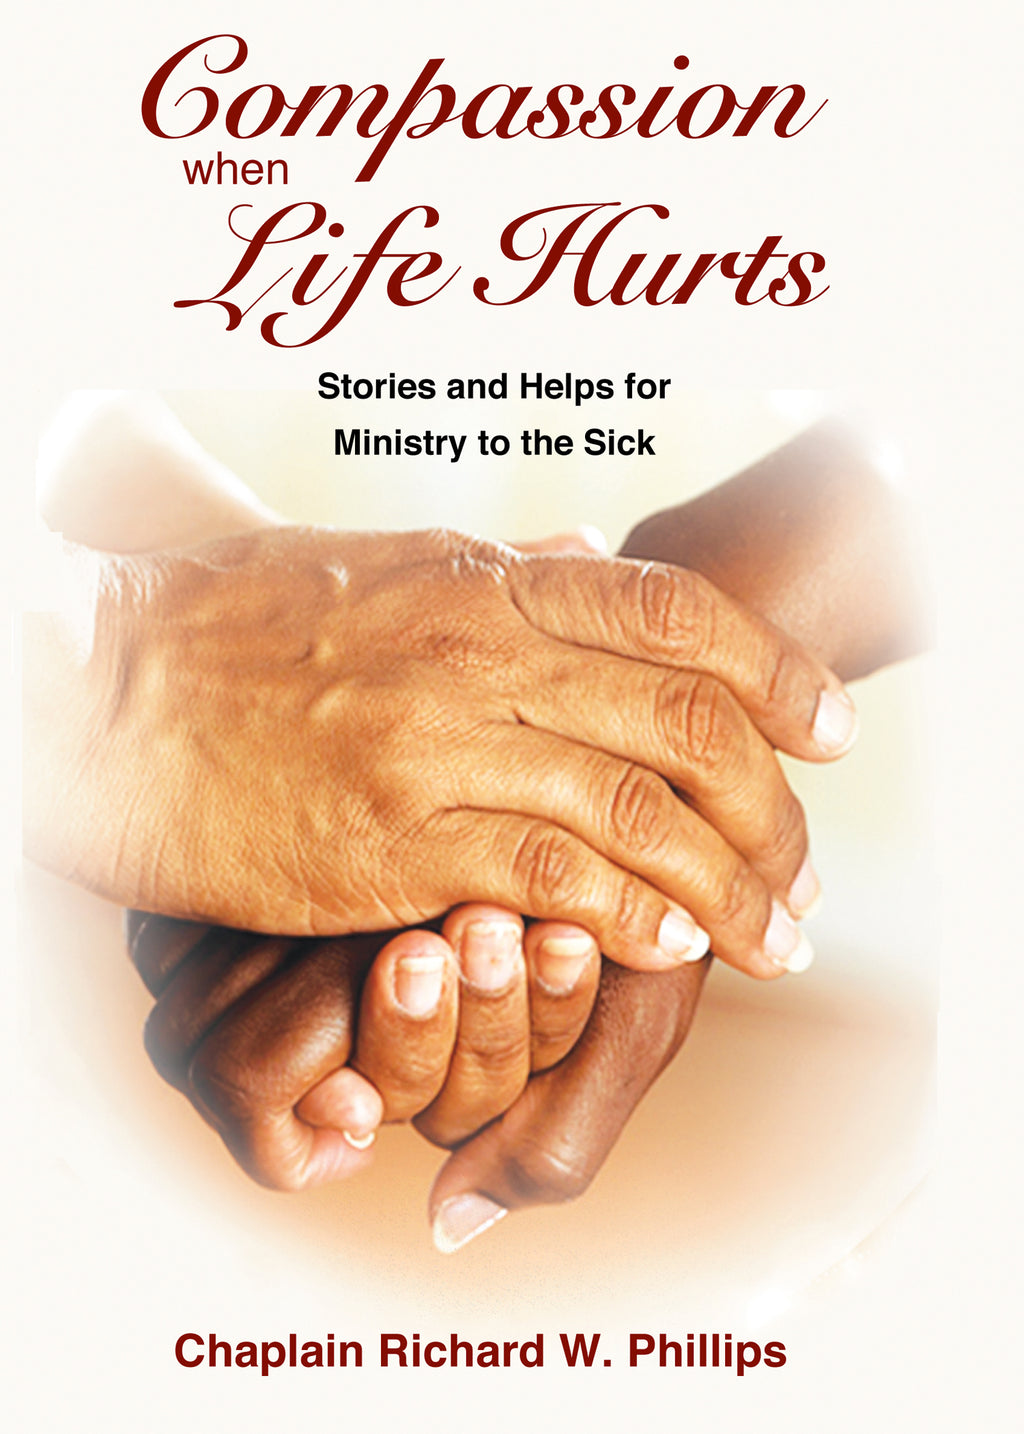 Compassion When Life Hurts - Stories and Helps for Ministry to the Sick